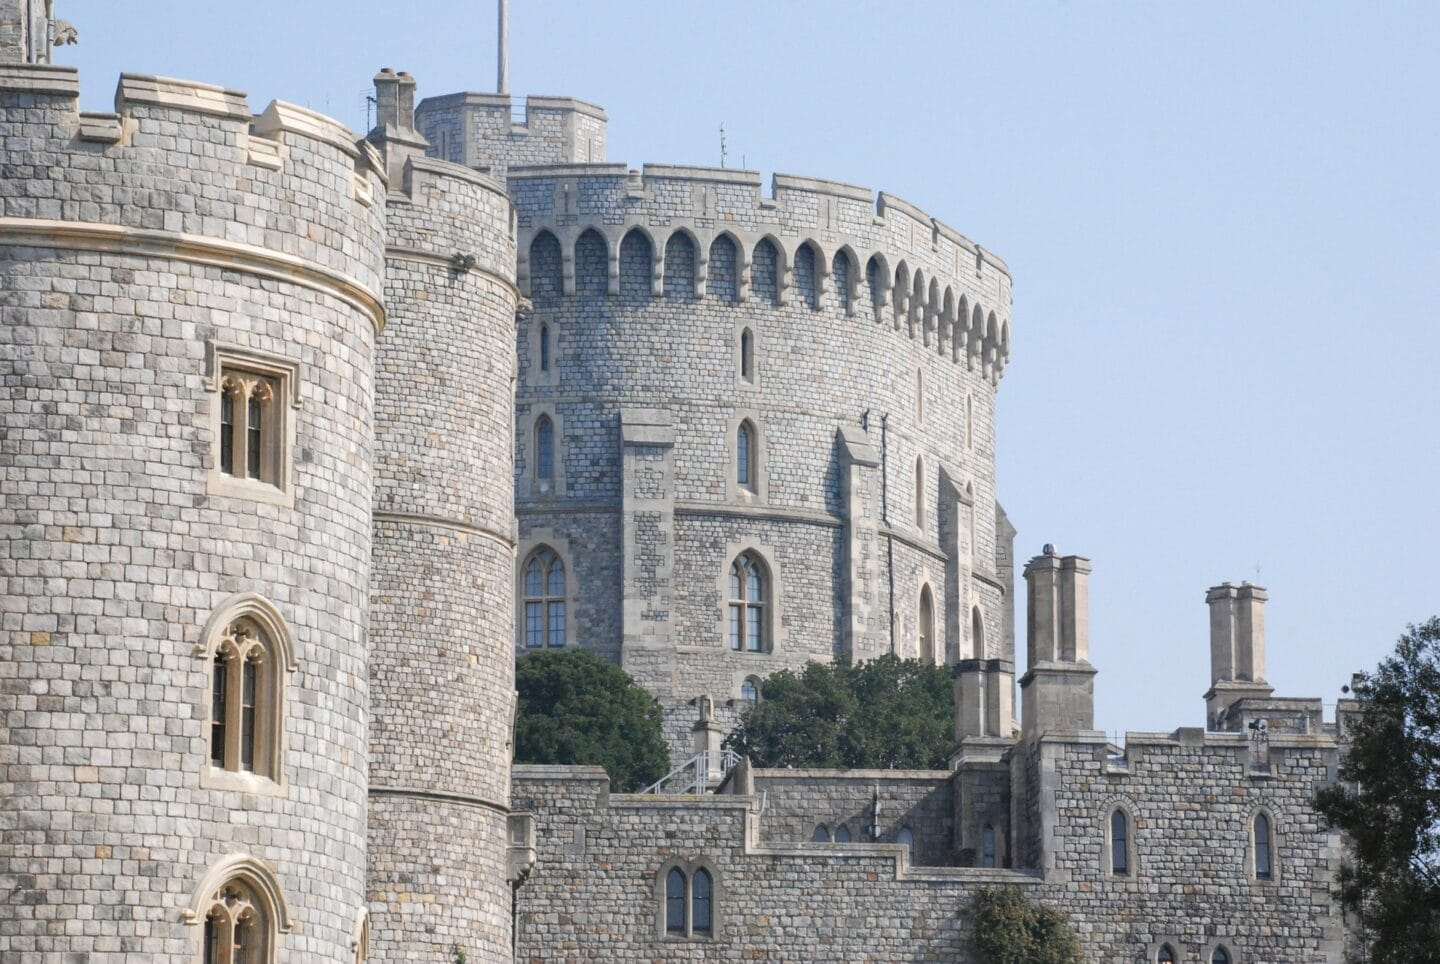 Windsor Castle towers and turrets